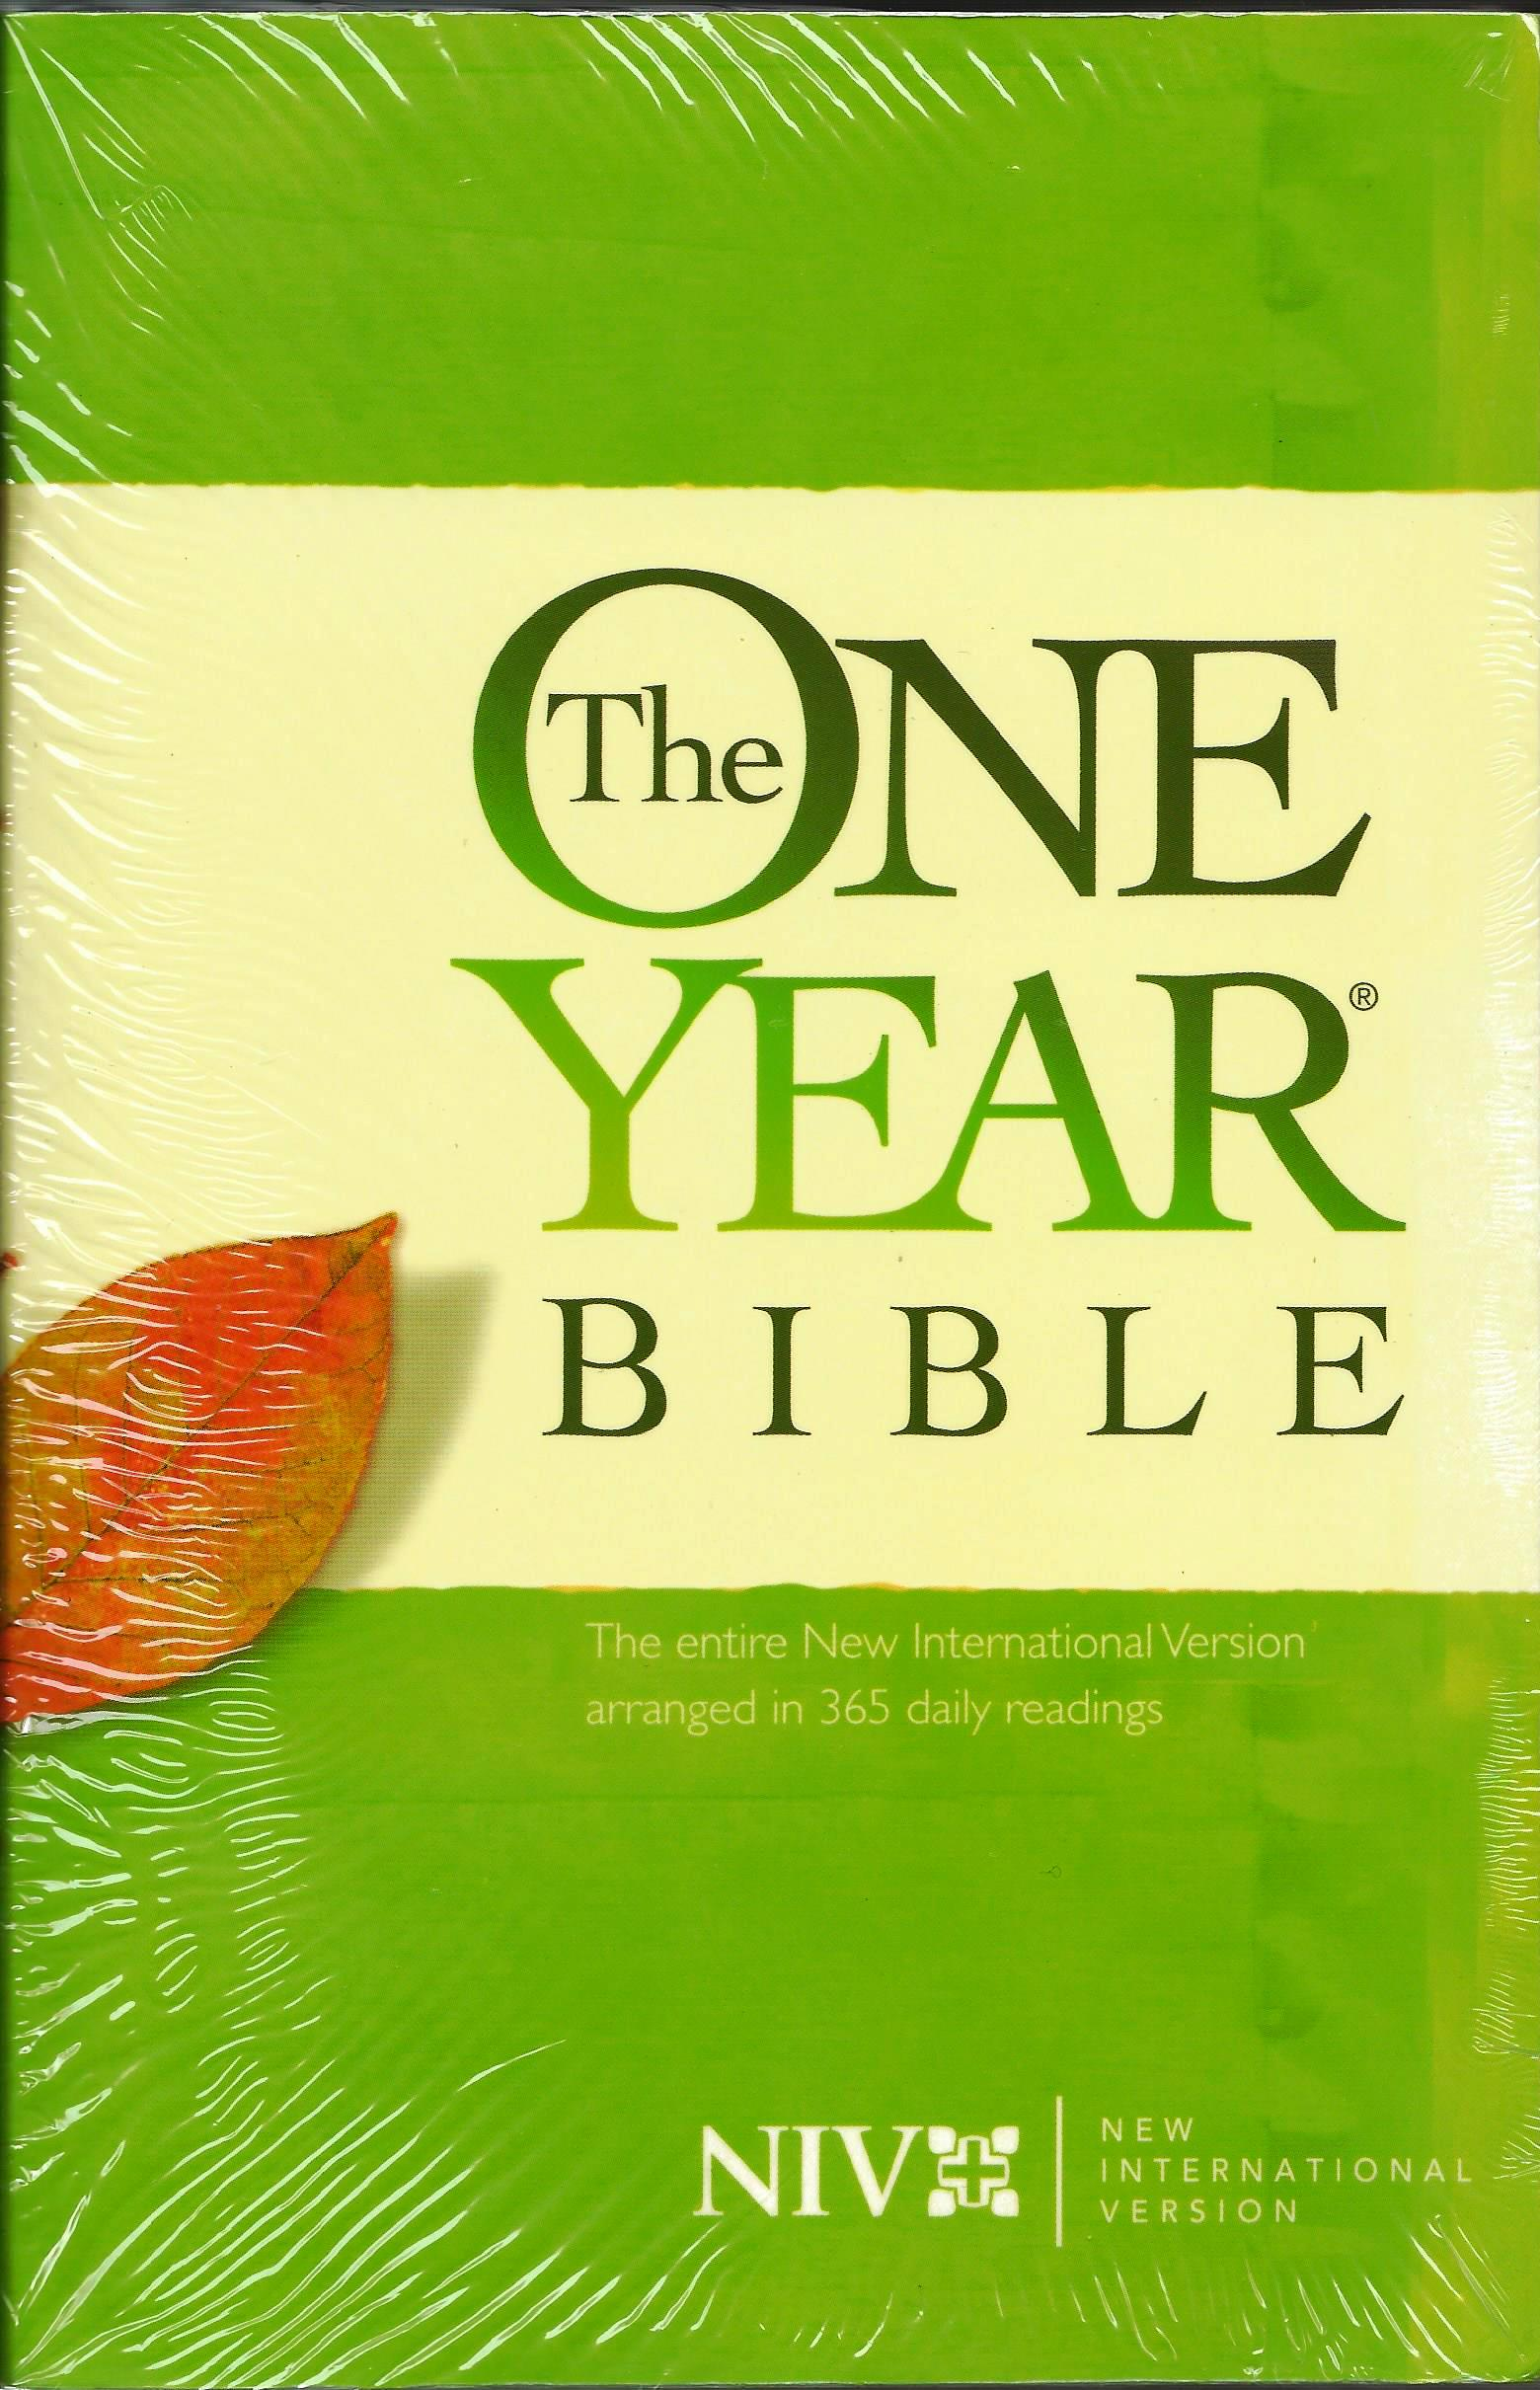 NIV THE ONE YEAR BIBLE Softcover